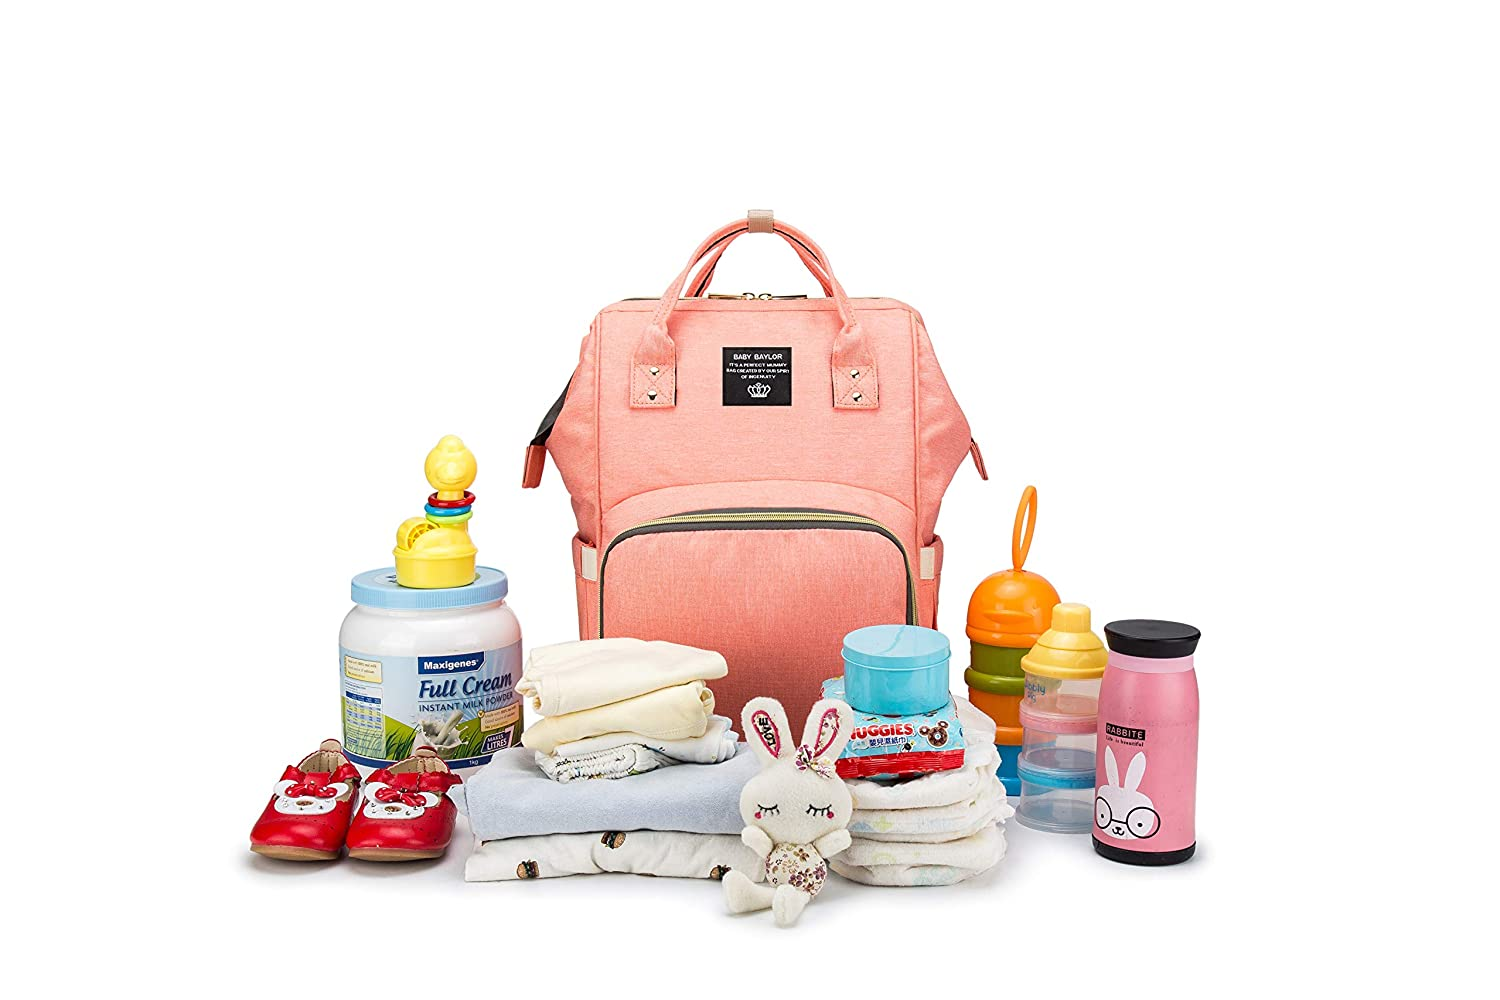 Diaper Bag Backpack Multi-Function Waterproof Travel Backpack Maternity Baby Nappy Changing Bags, Large Capacity,Multi-Function, Fashion and Durable